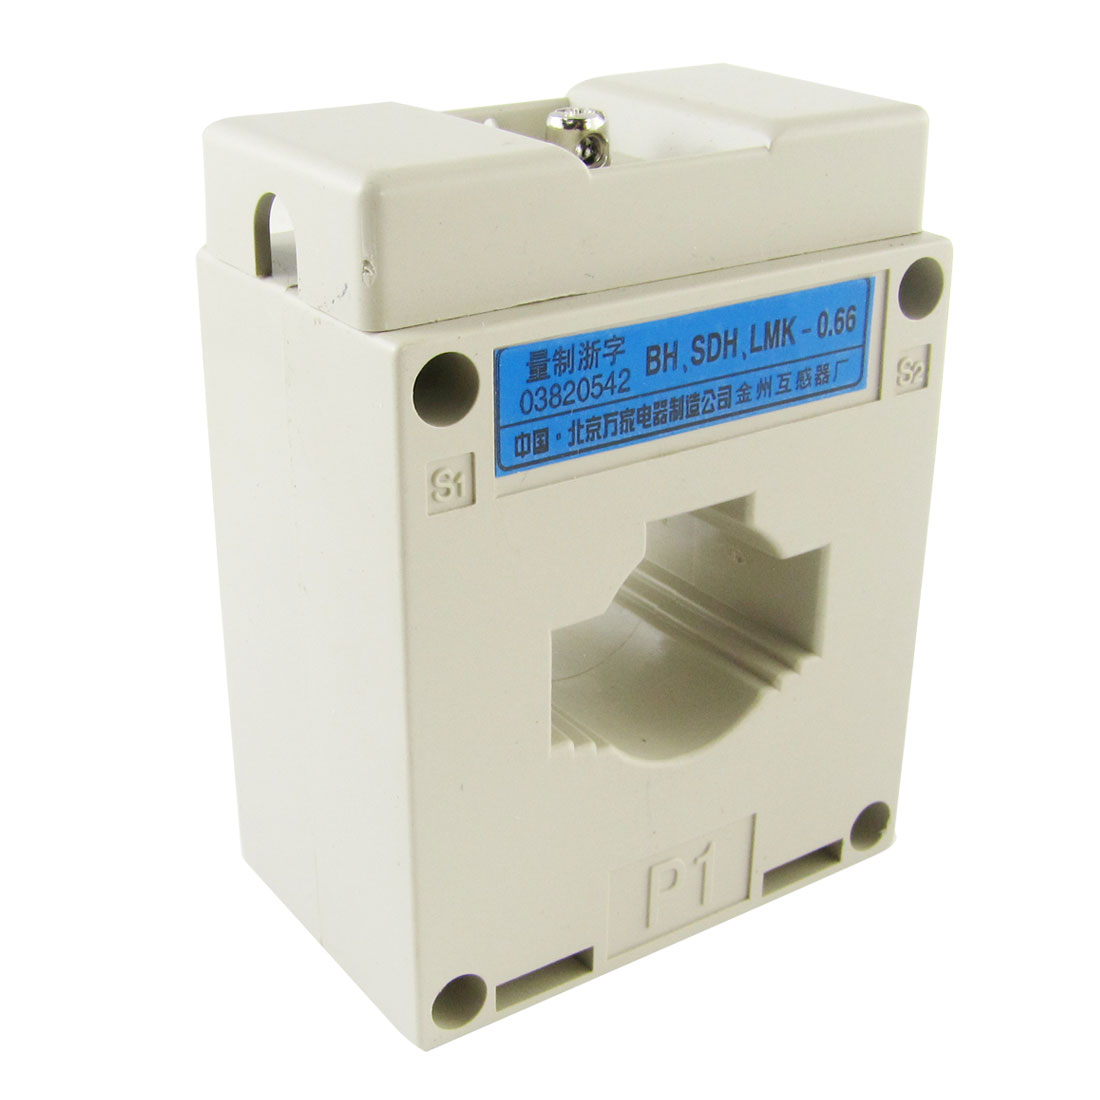 50A Primary 5A Secondary 50/5 Ratio Current Transformer 0.66KV